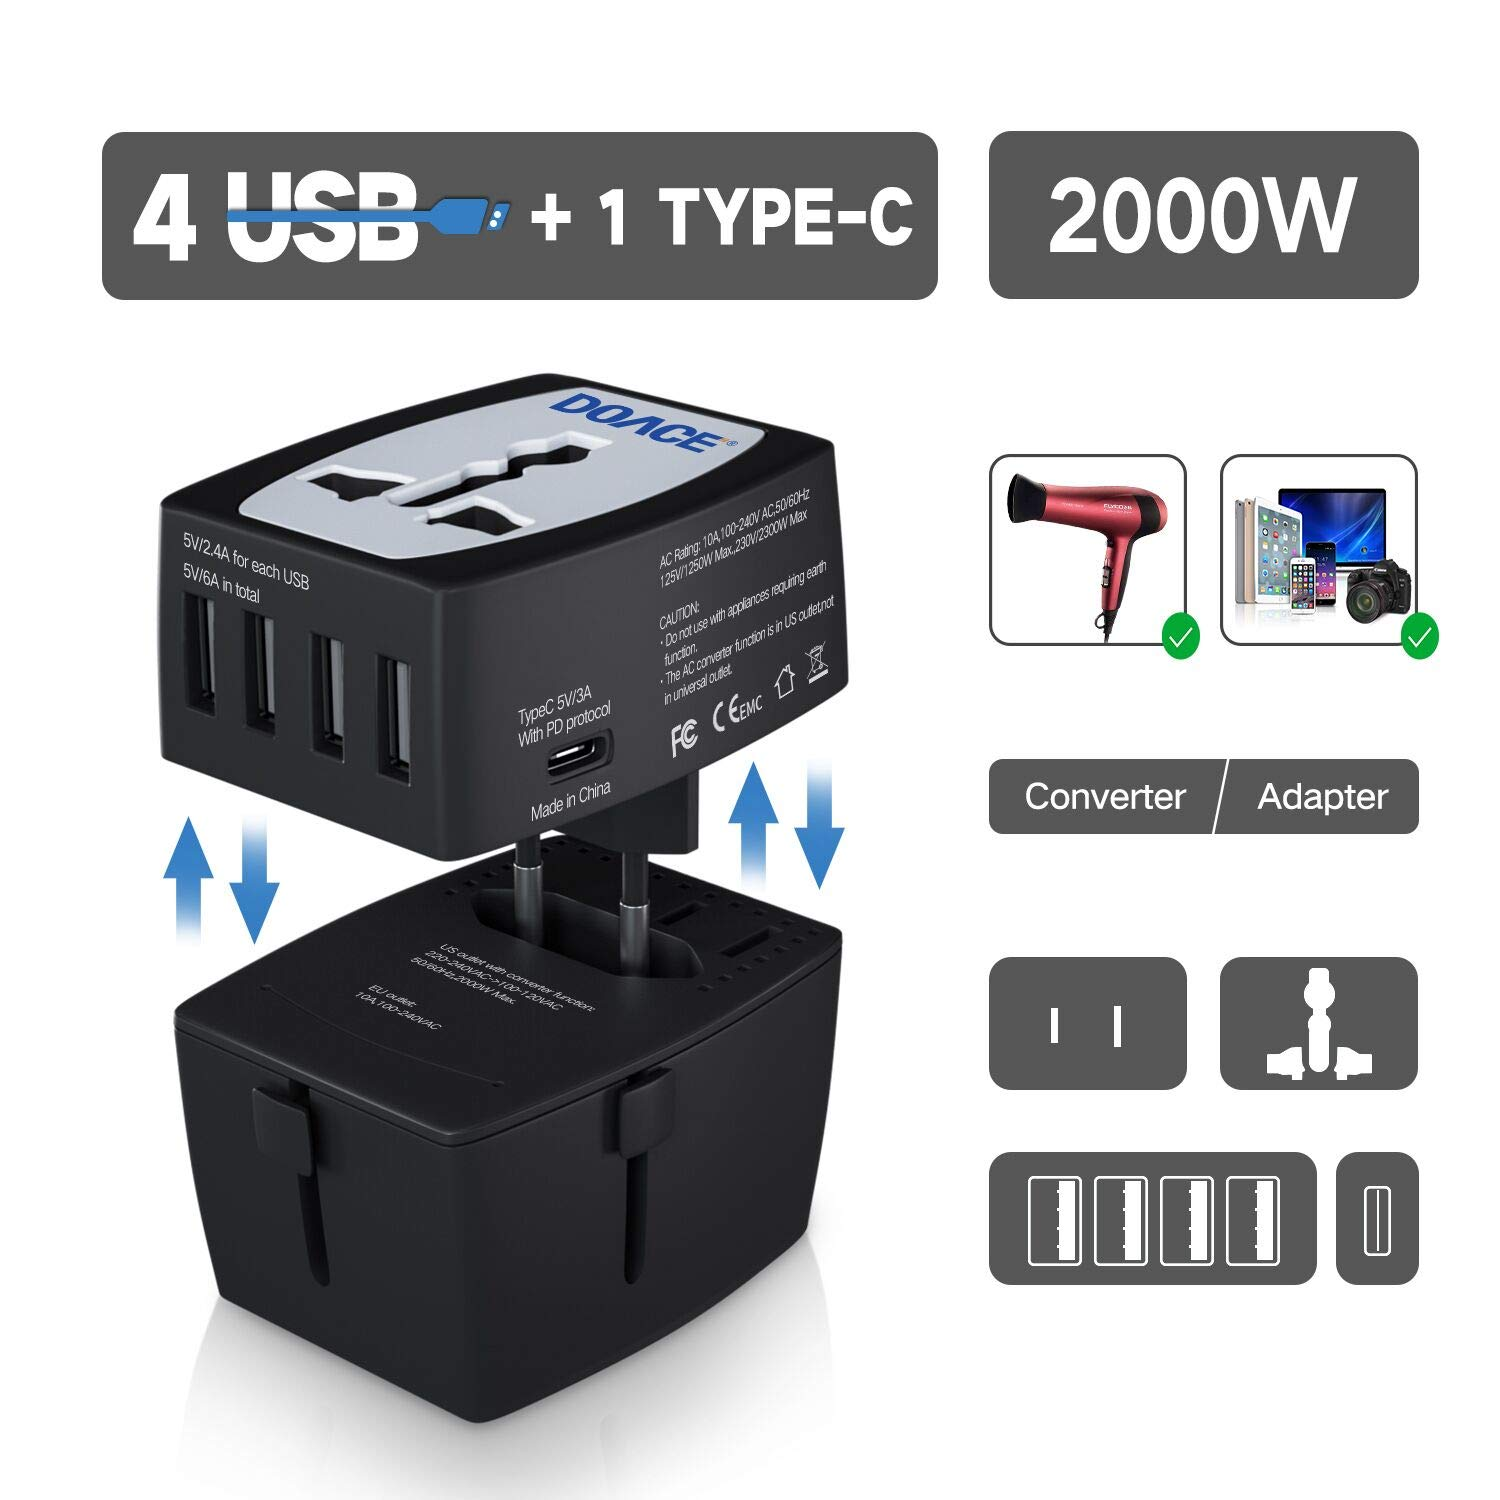 DOACE M9 2000W Travel Voltage Converter 220V to 110V for Hair Dryer Steam Iron, 10A Universal All in One UK/AU/US/EU Power Adapter with 4-USB Port and PD Charger for Laptop MacBook Camera Cell Phone